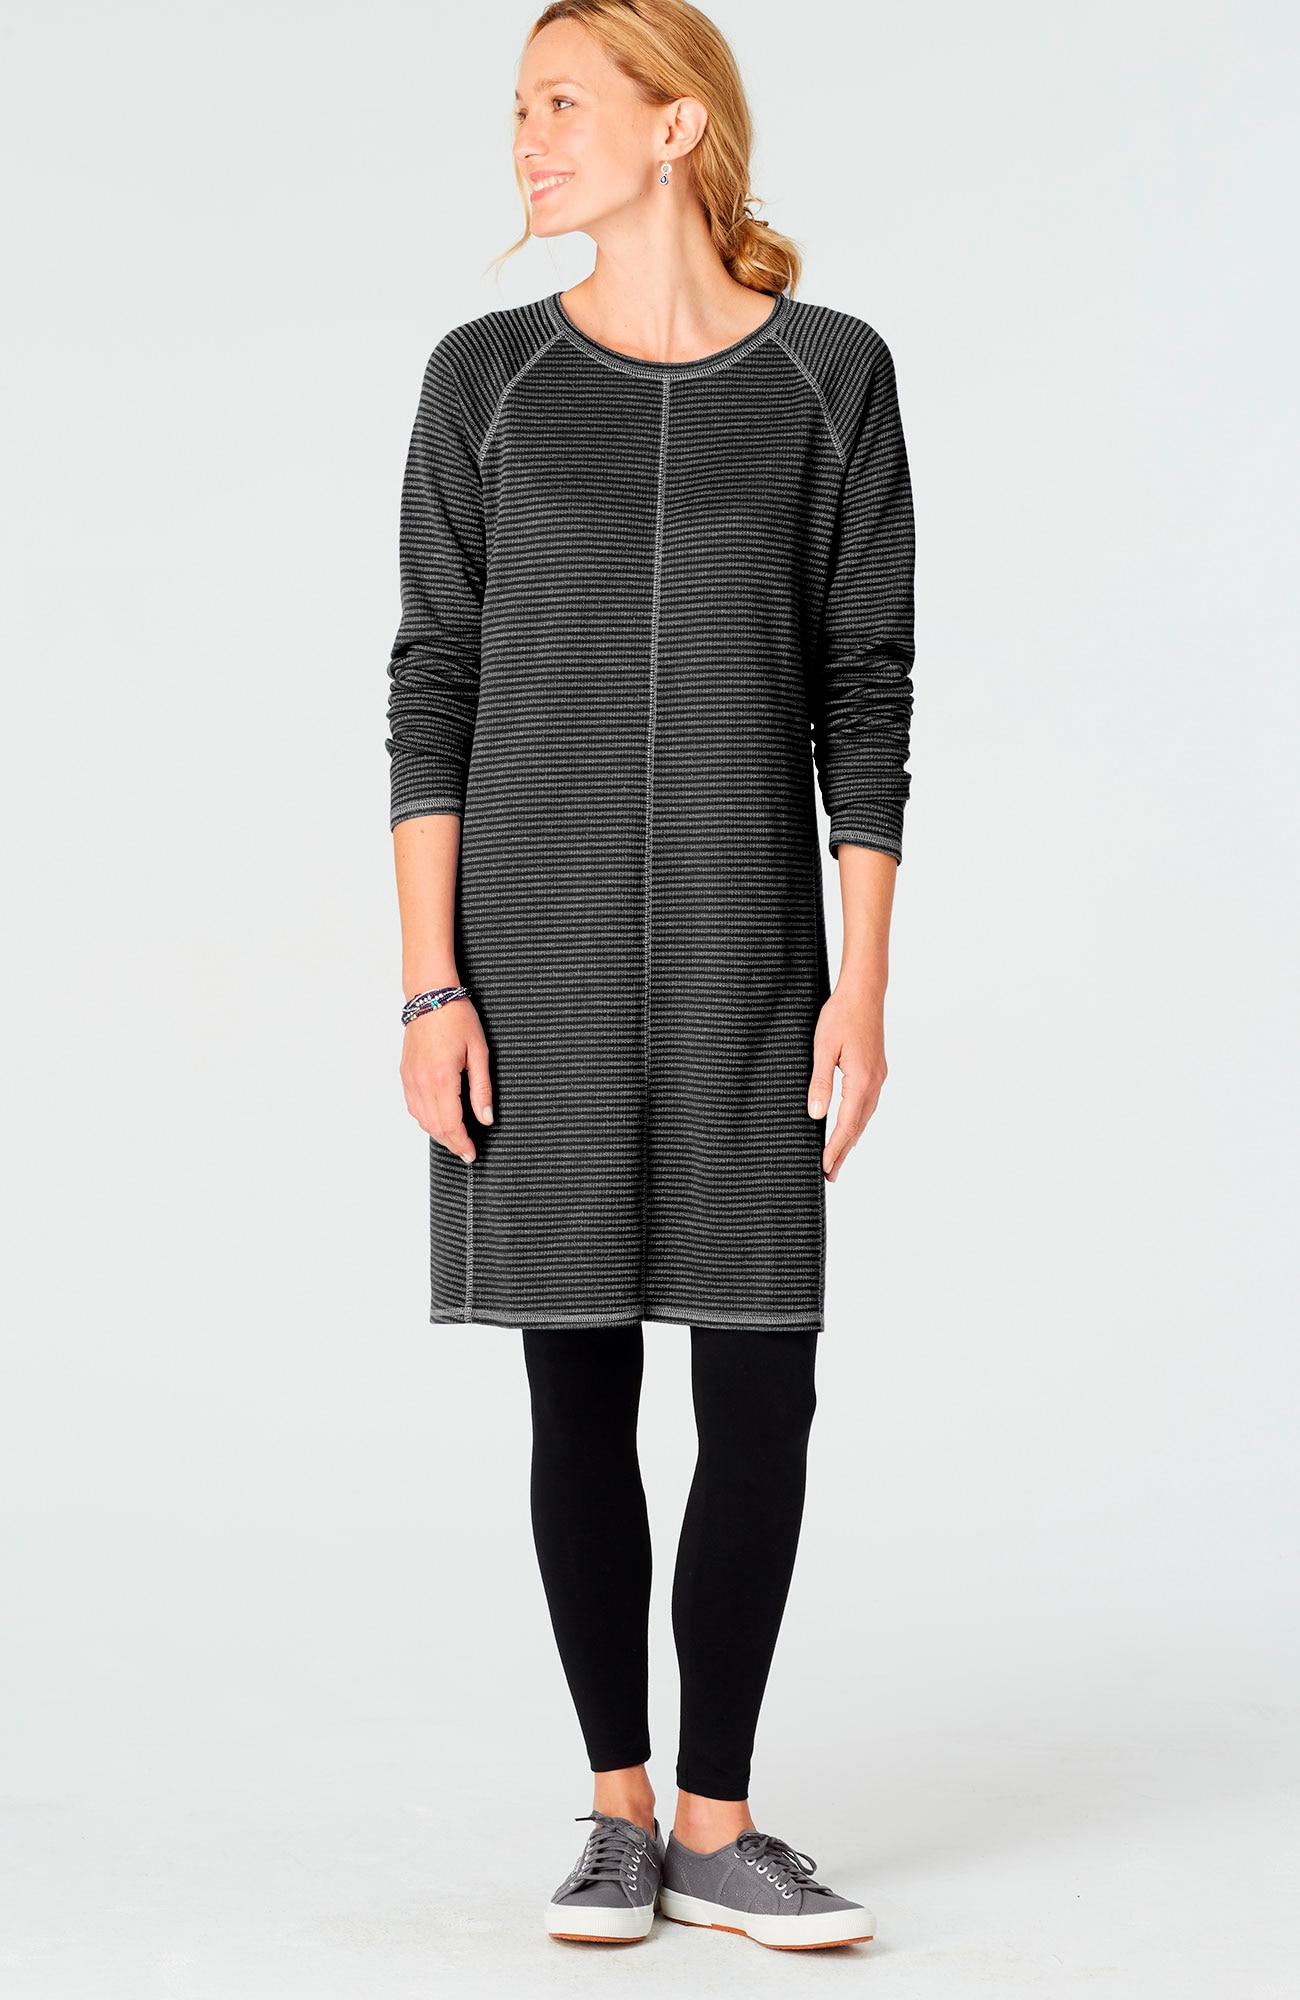 textured knit dress